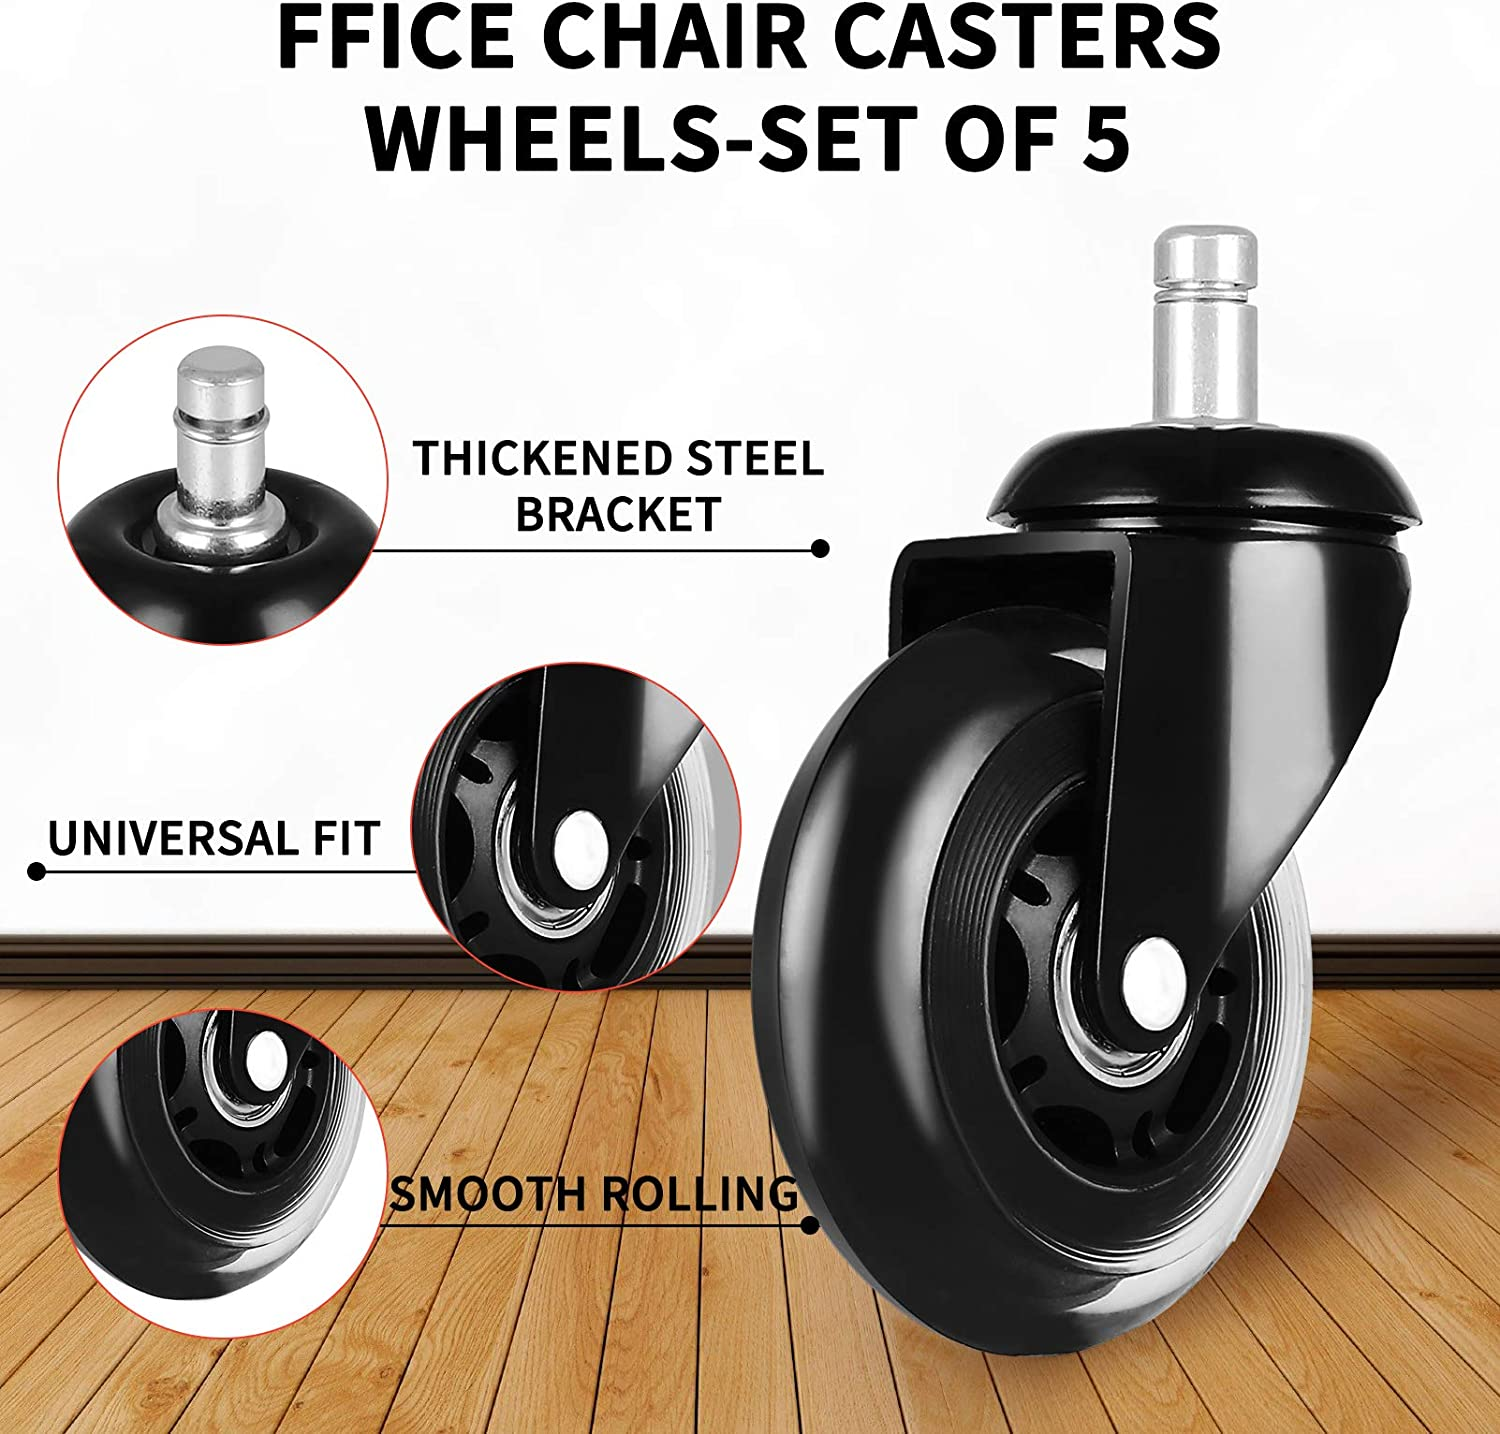 Office Chair Caster Wheels Set of 5 Black Rubber Universal Fit Office Chair Caster Wheels Replacement for All Floors 3in Durable Heavy Duty Office Chair Casters Safe for Hardwood Carpet and Mat Floors